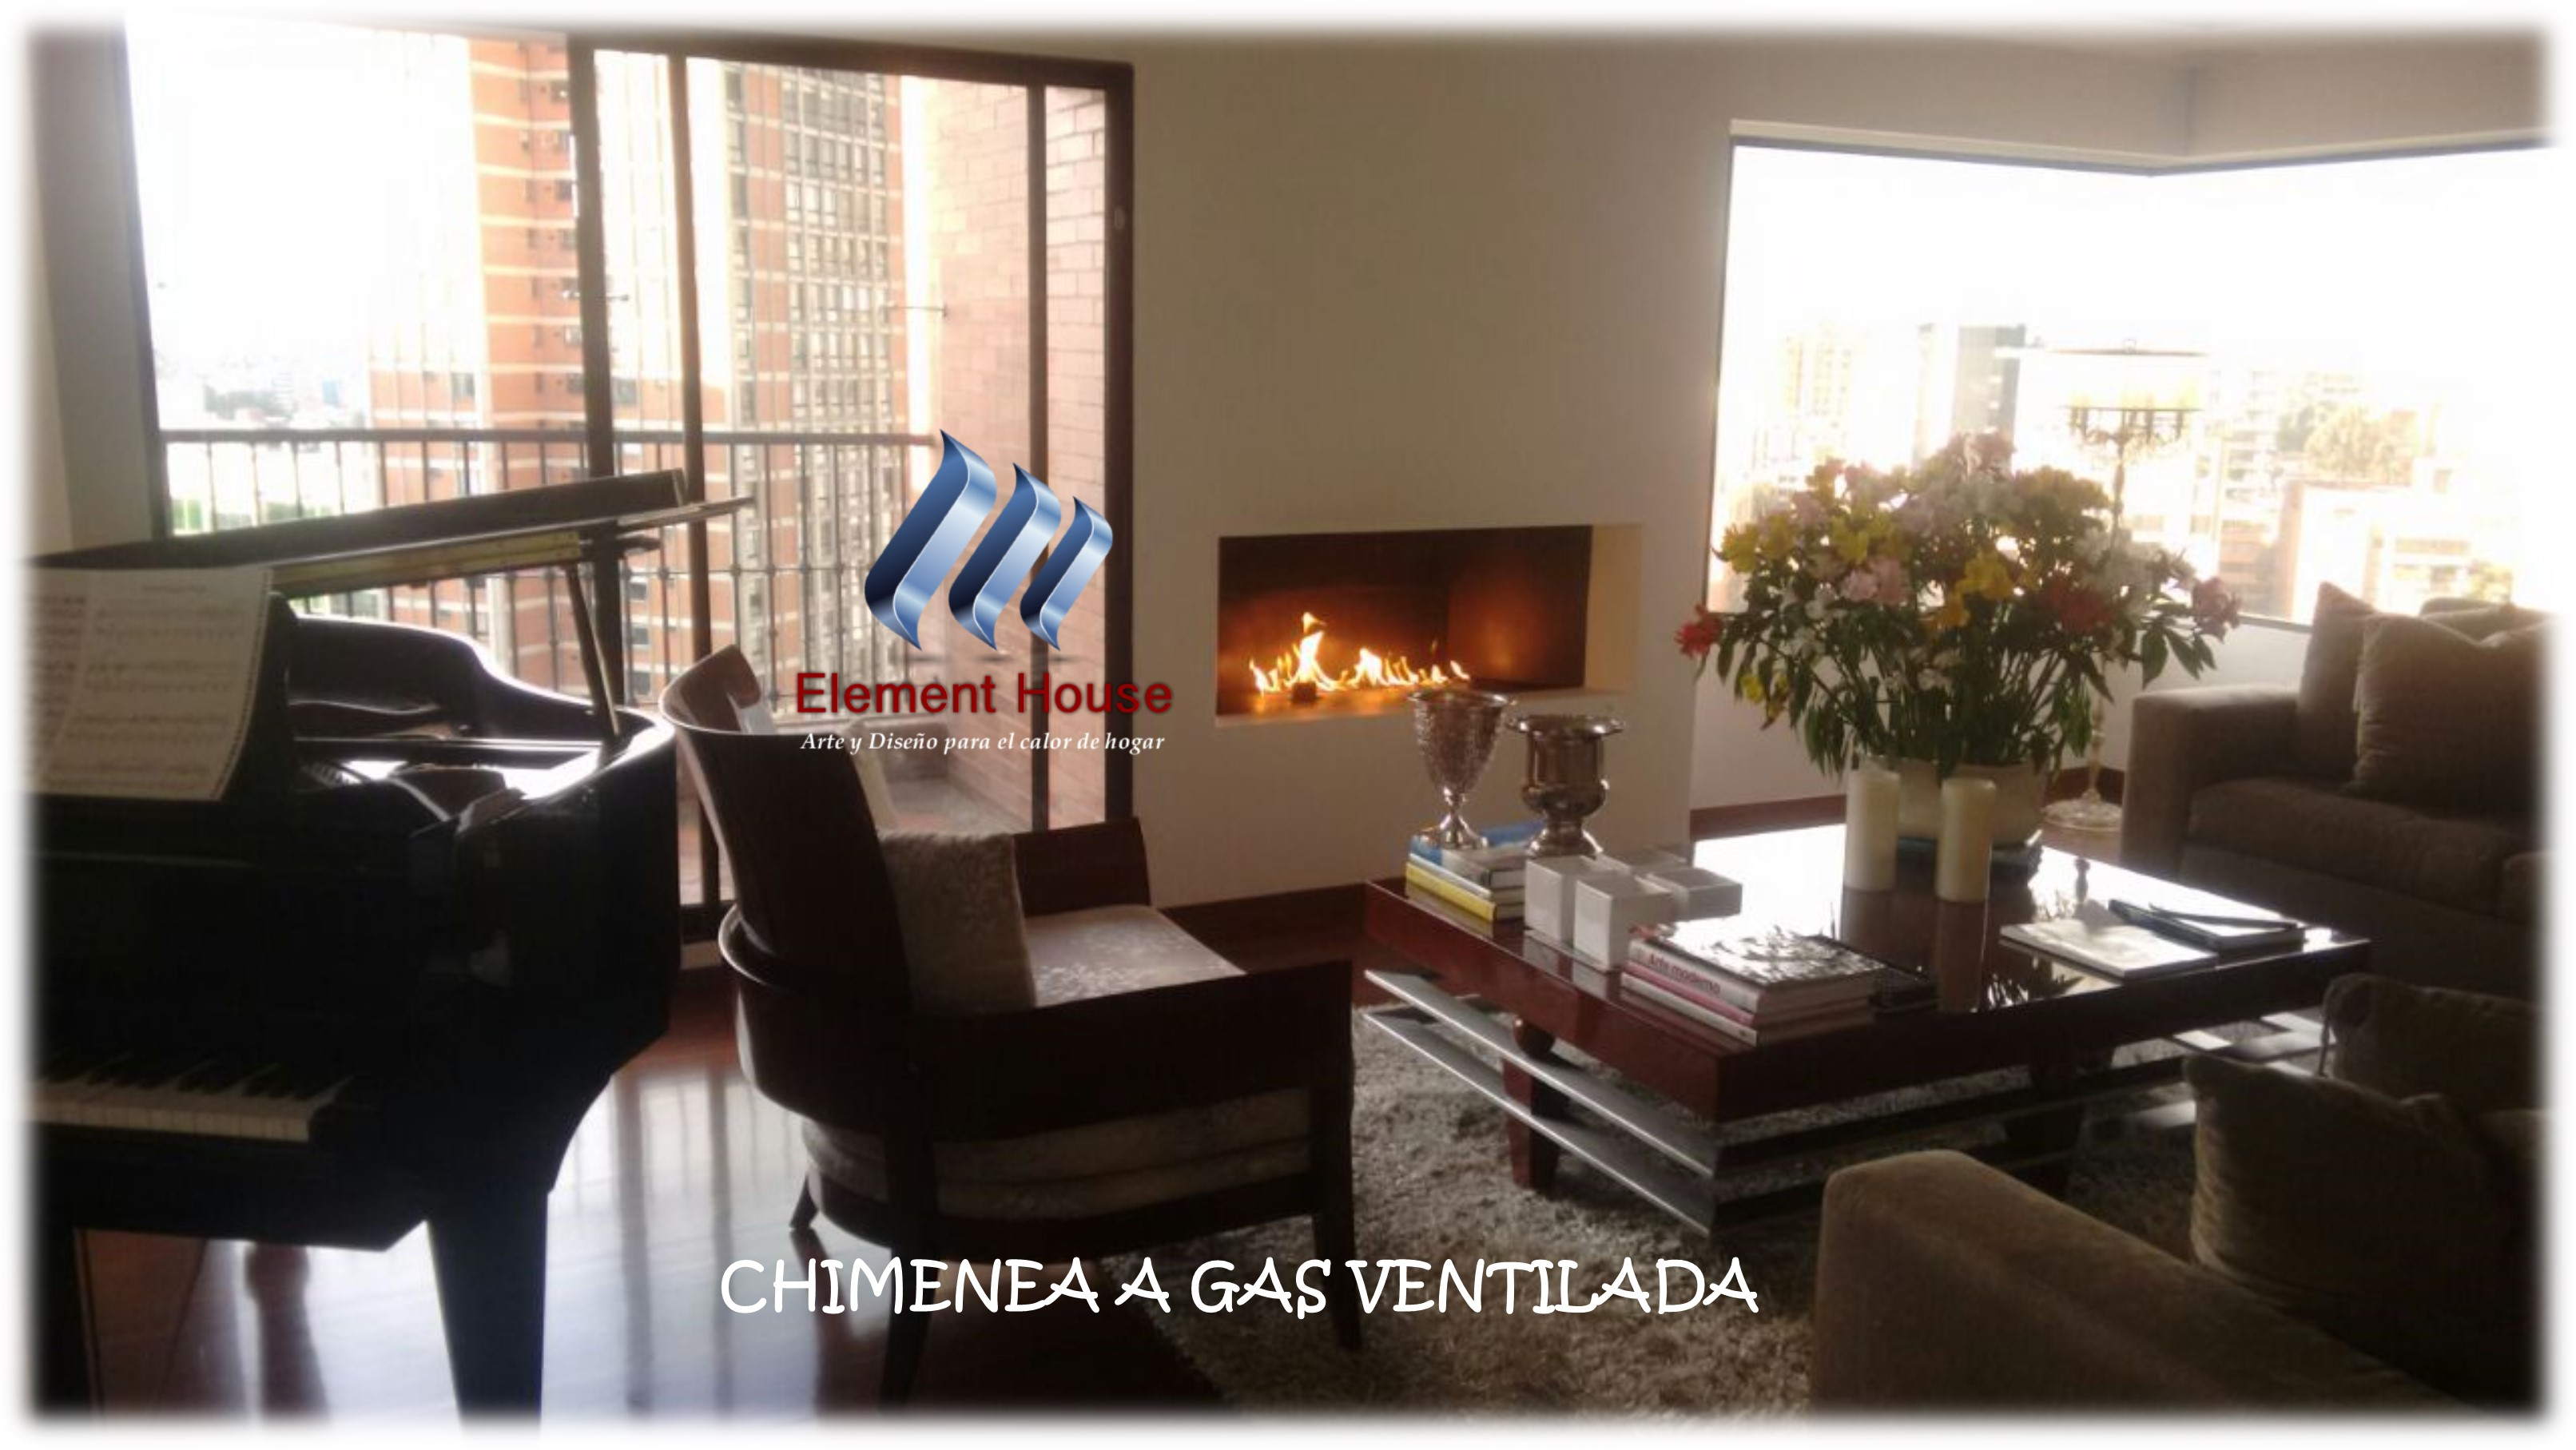 CHIMENEAS A GAS ELEMENT HOUSE (29)